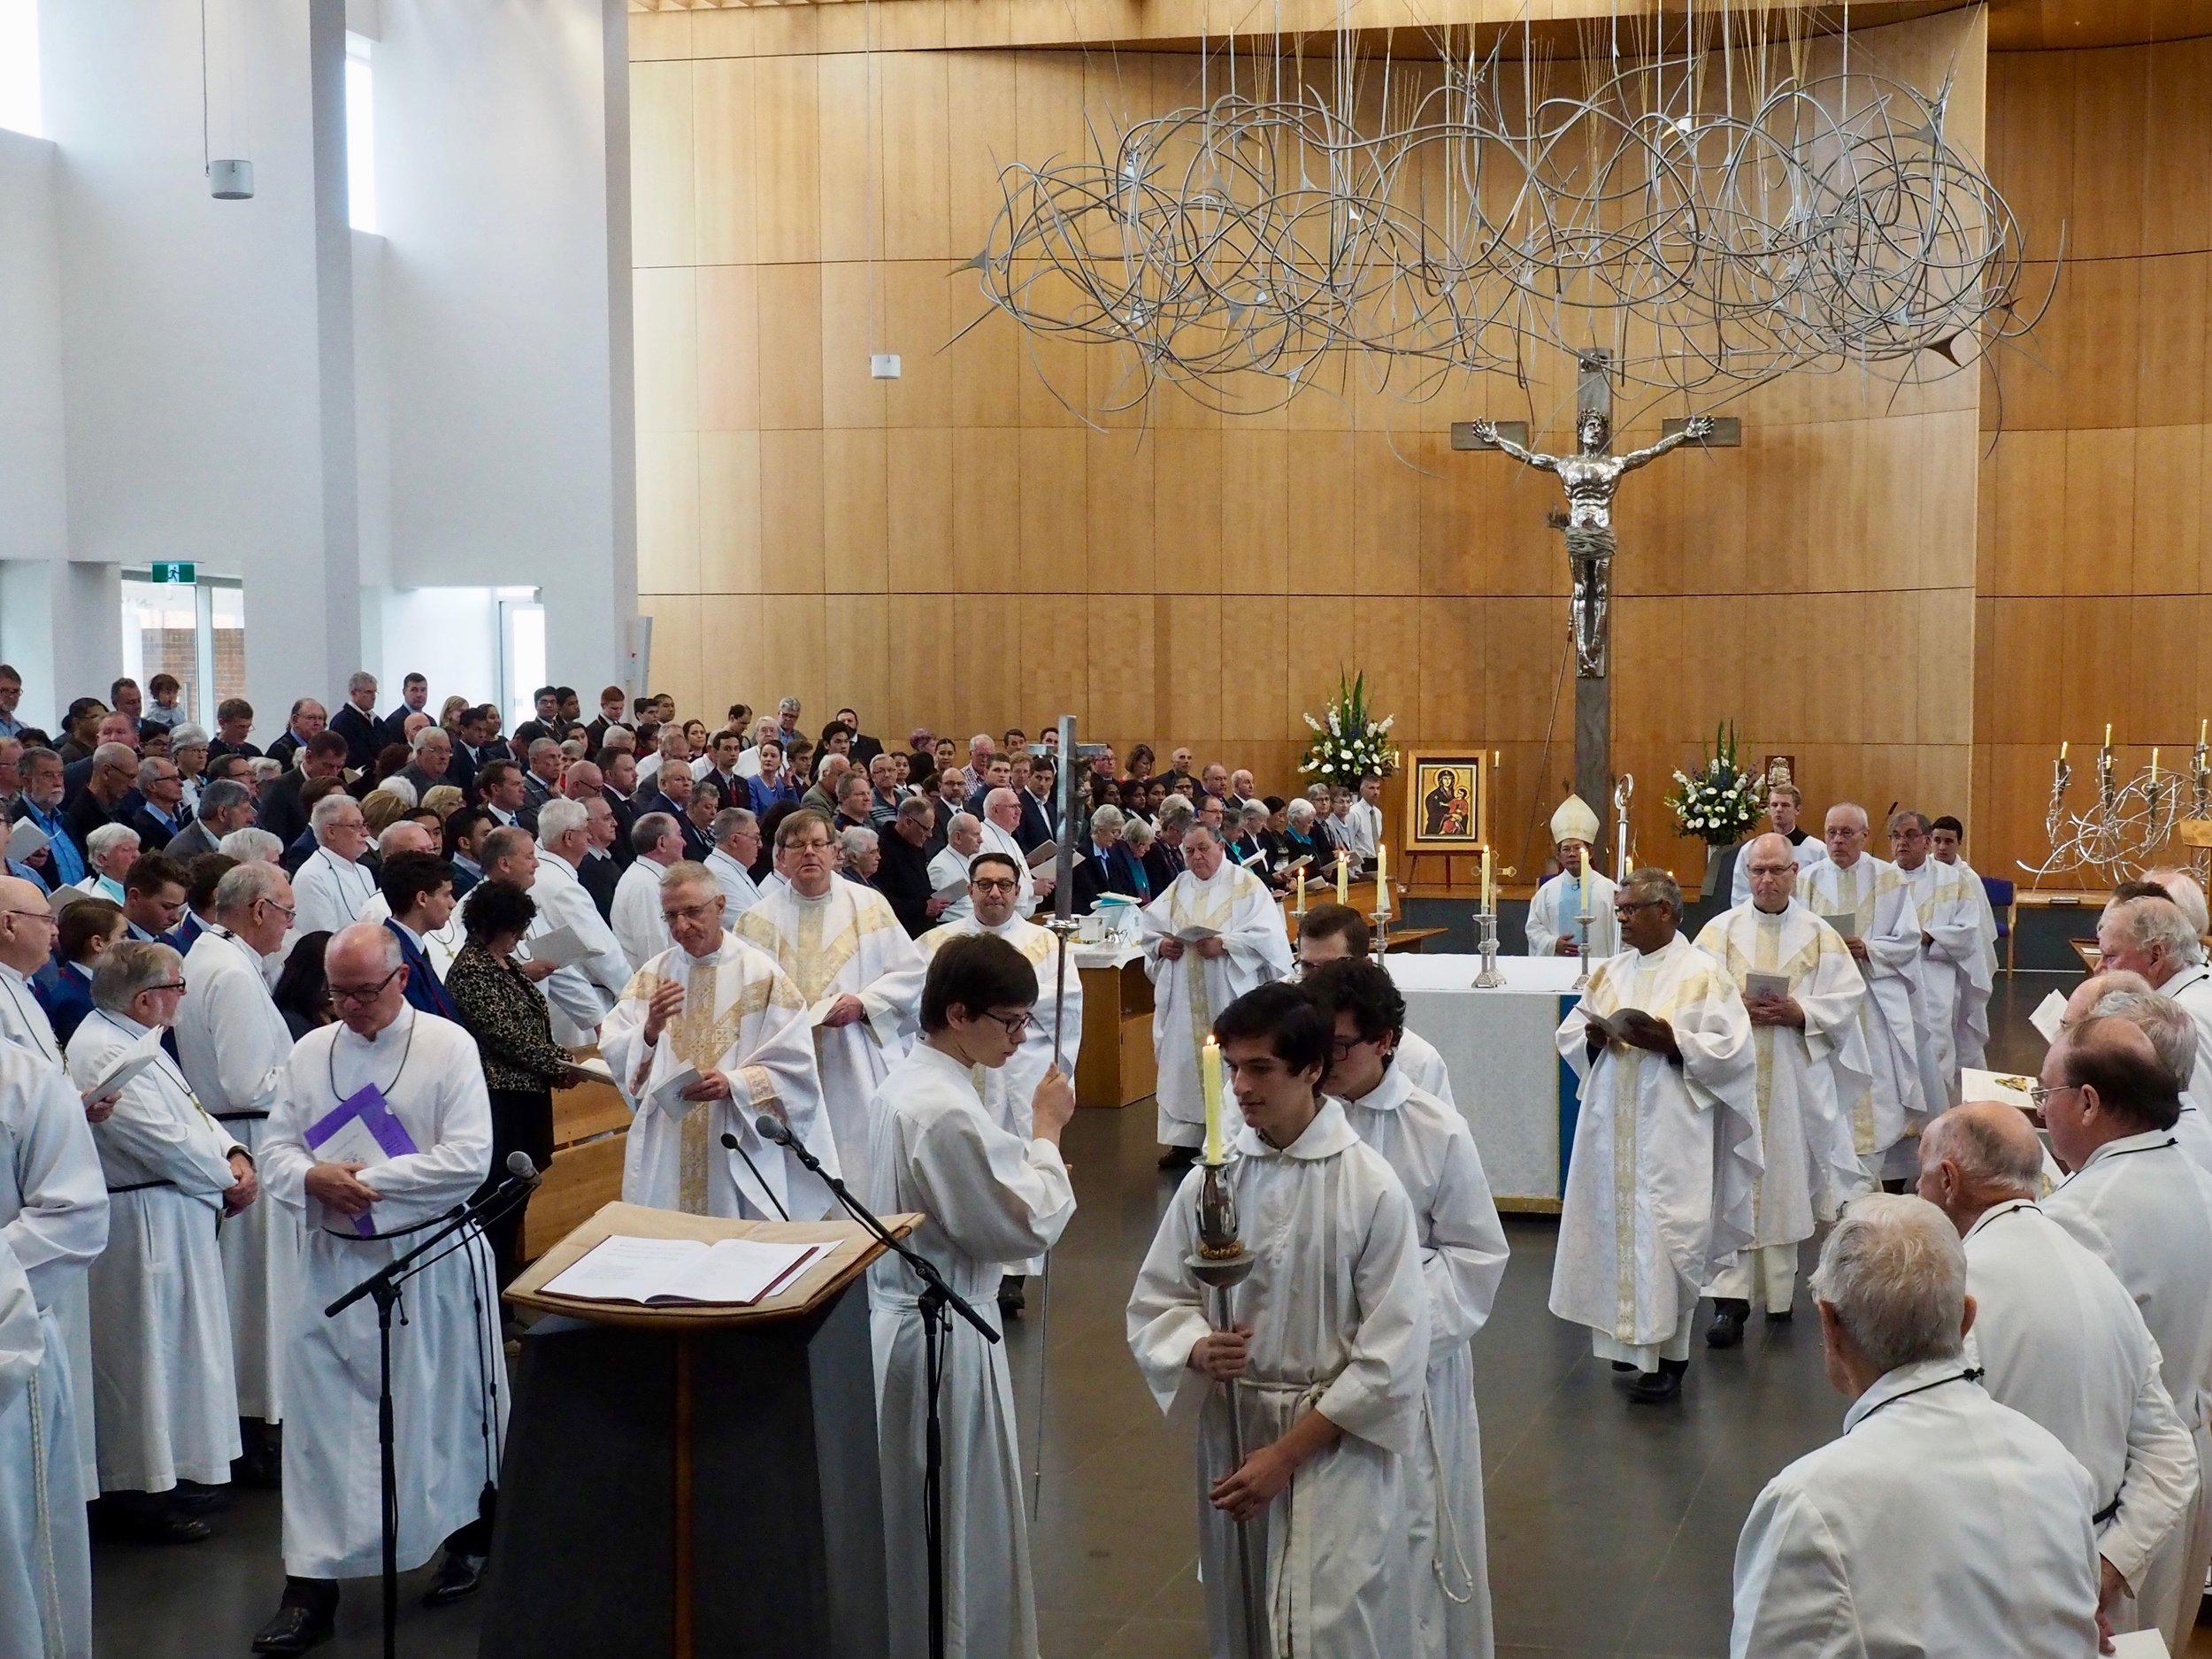 Bicentenary Mass Sydney 12 Aug 2017 Photos by Paul Harris 00104.jpg